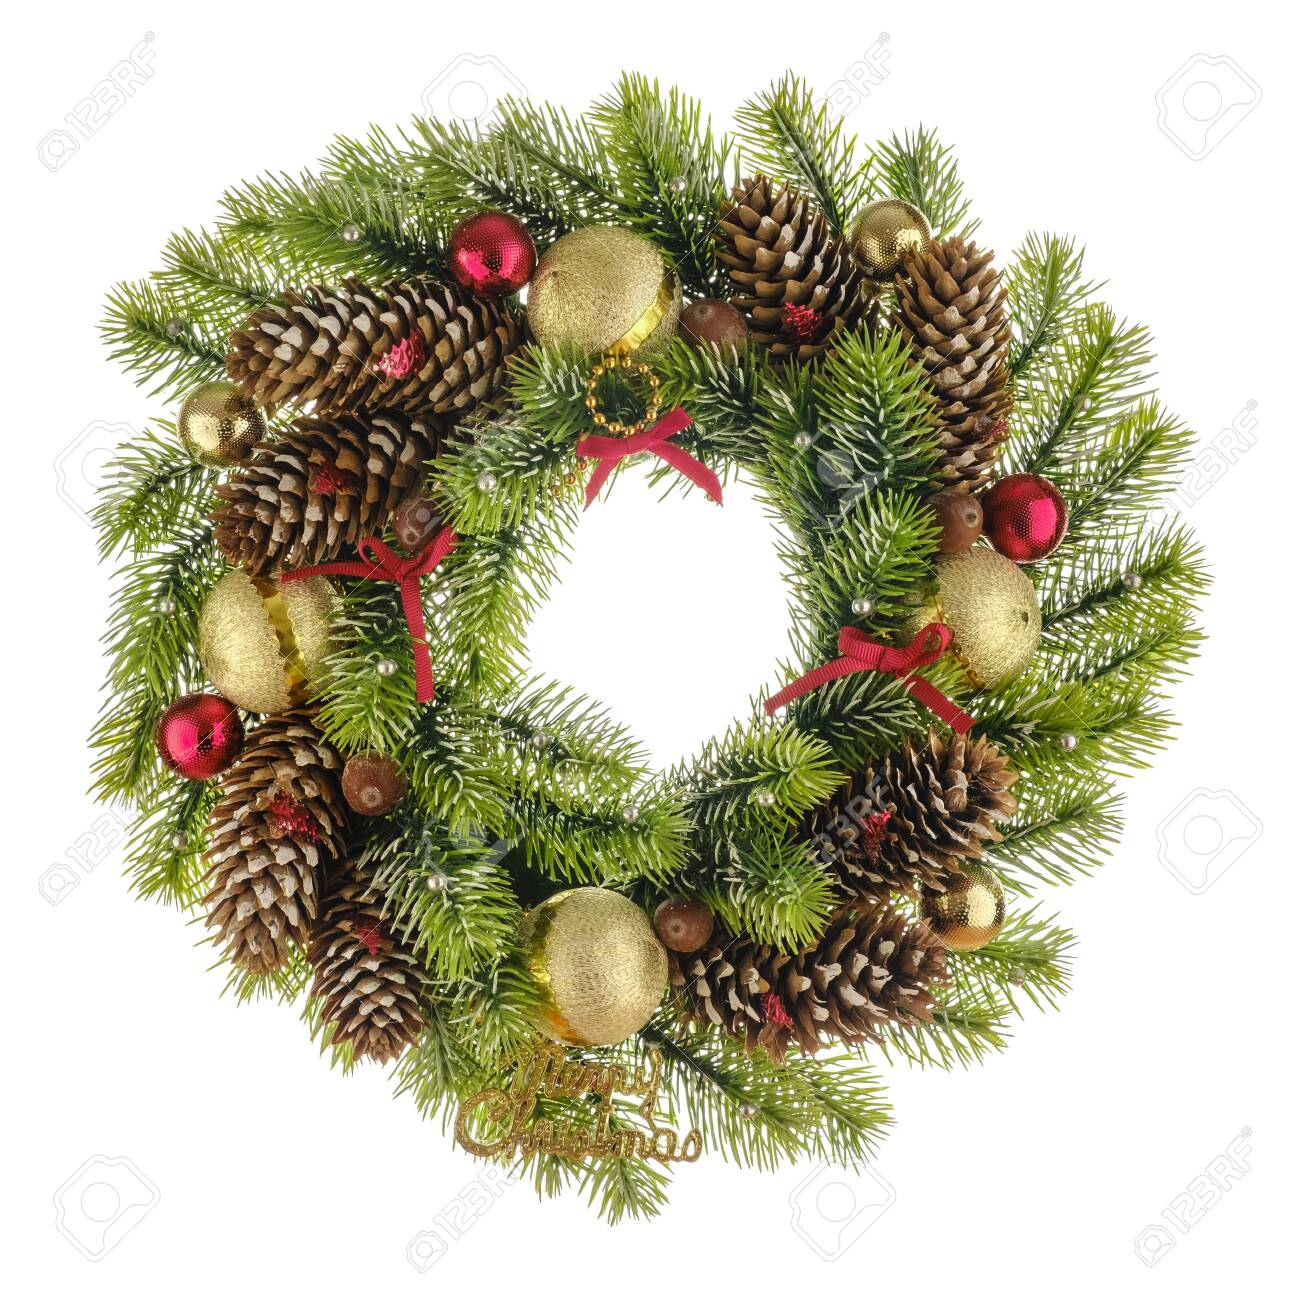 Christmas Composition With Wreath Made Of Christmas Tree Branches Bows Stock Photo Picture And Royalty Free Image Image 133321068